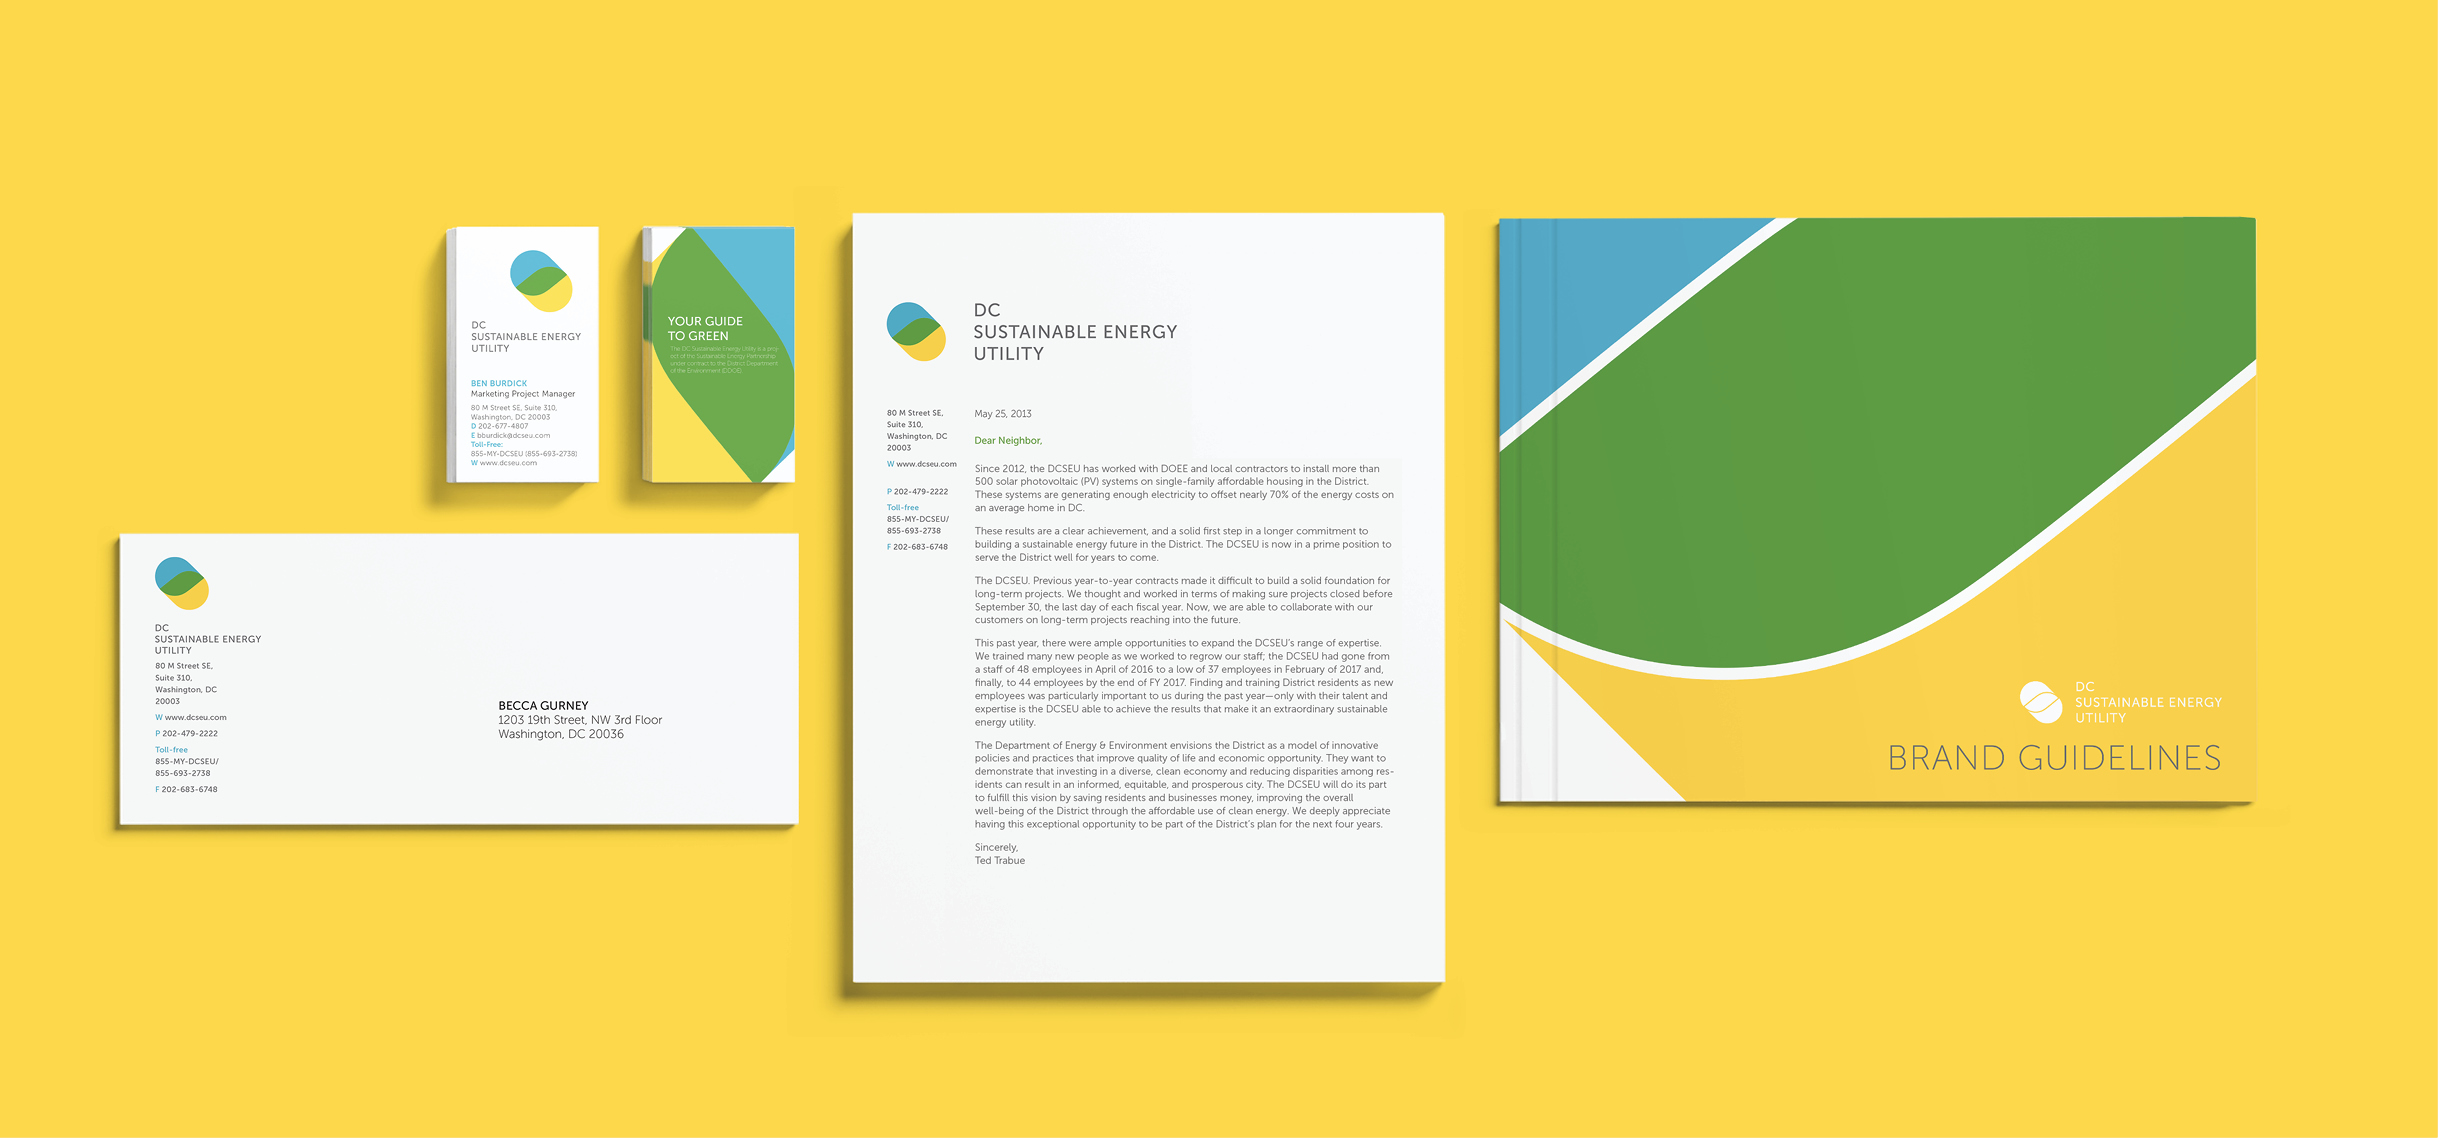 The stationary set including letterhead, business card, envelope and the Brand Guide book. All items are neatly arranged and aligned on a yellow background.